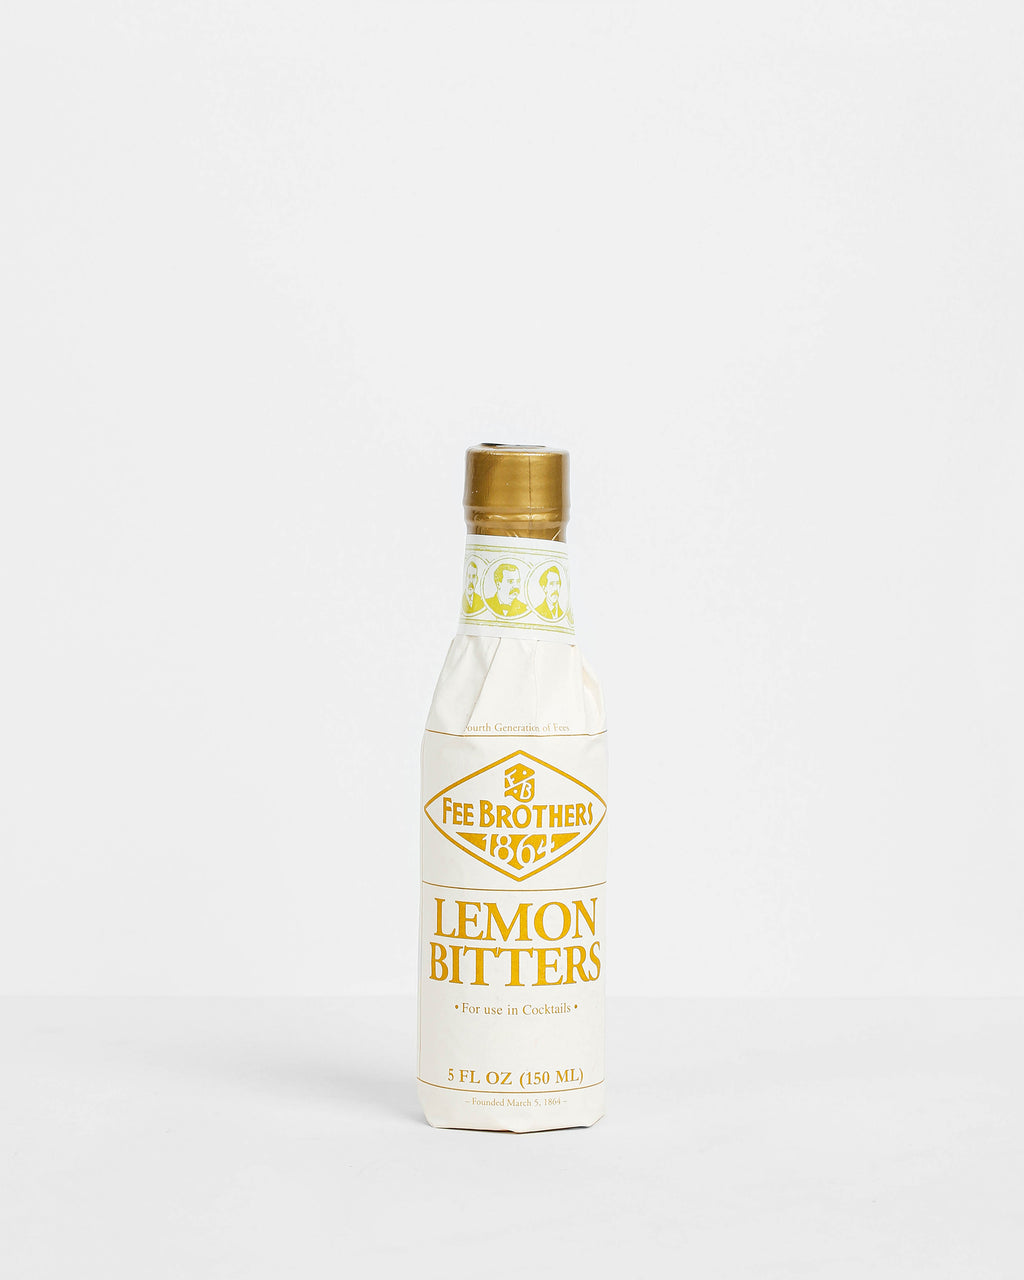 Fee Brother's - Lemon Bitters